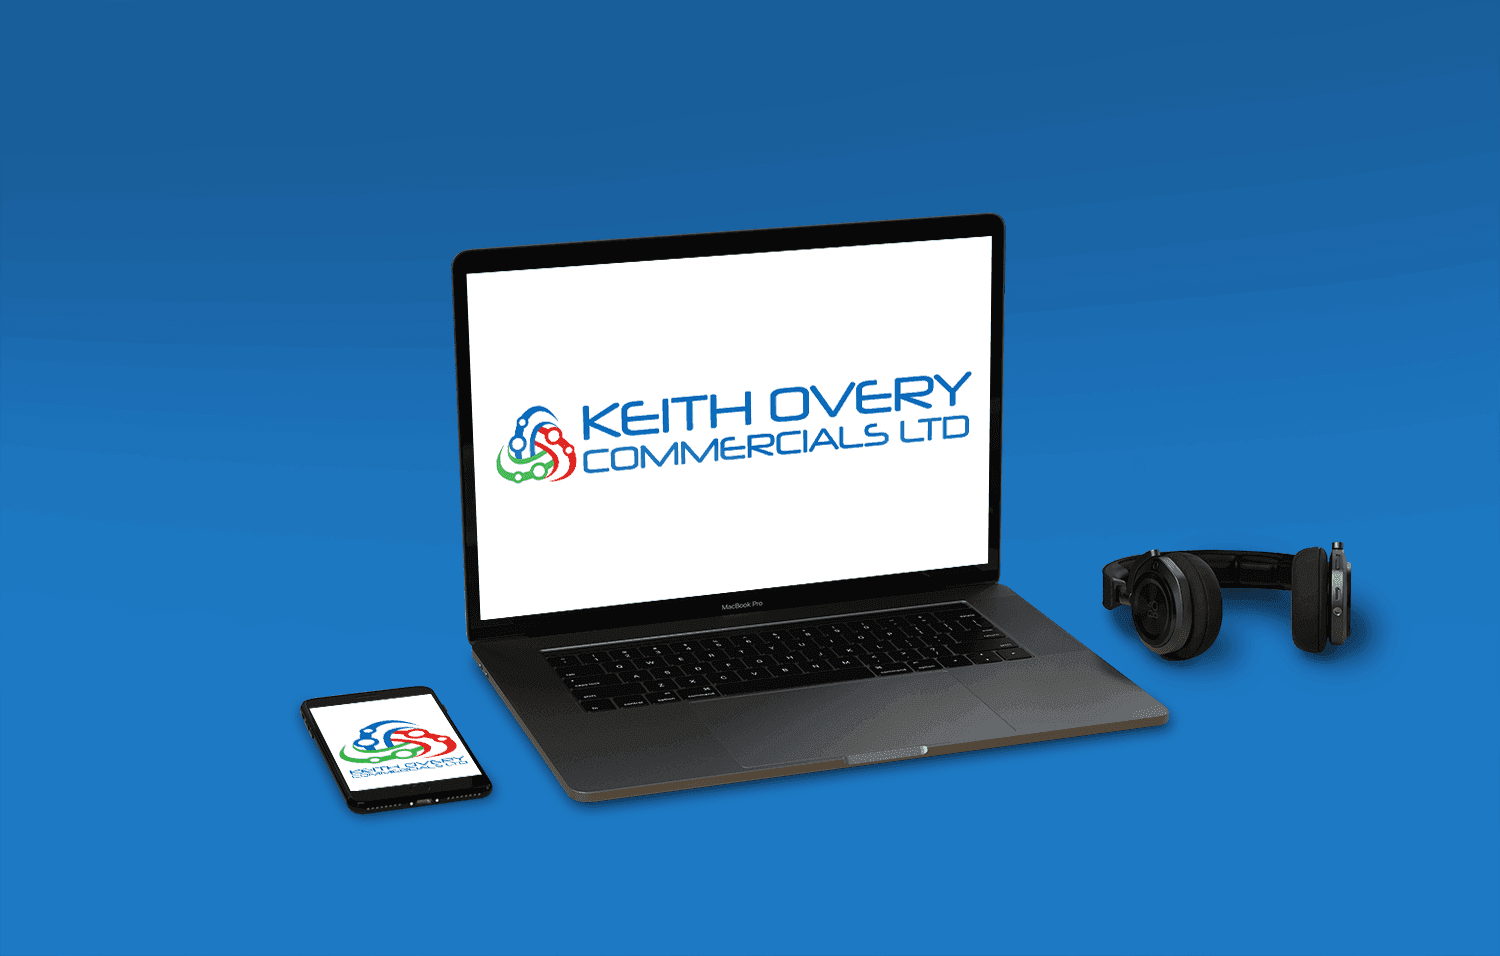 Keith Overy Commercials Ltd